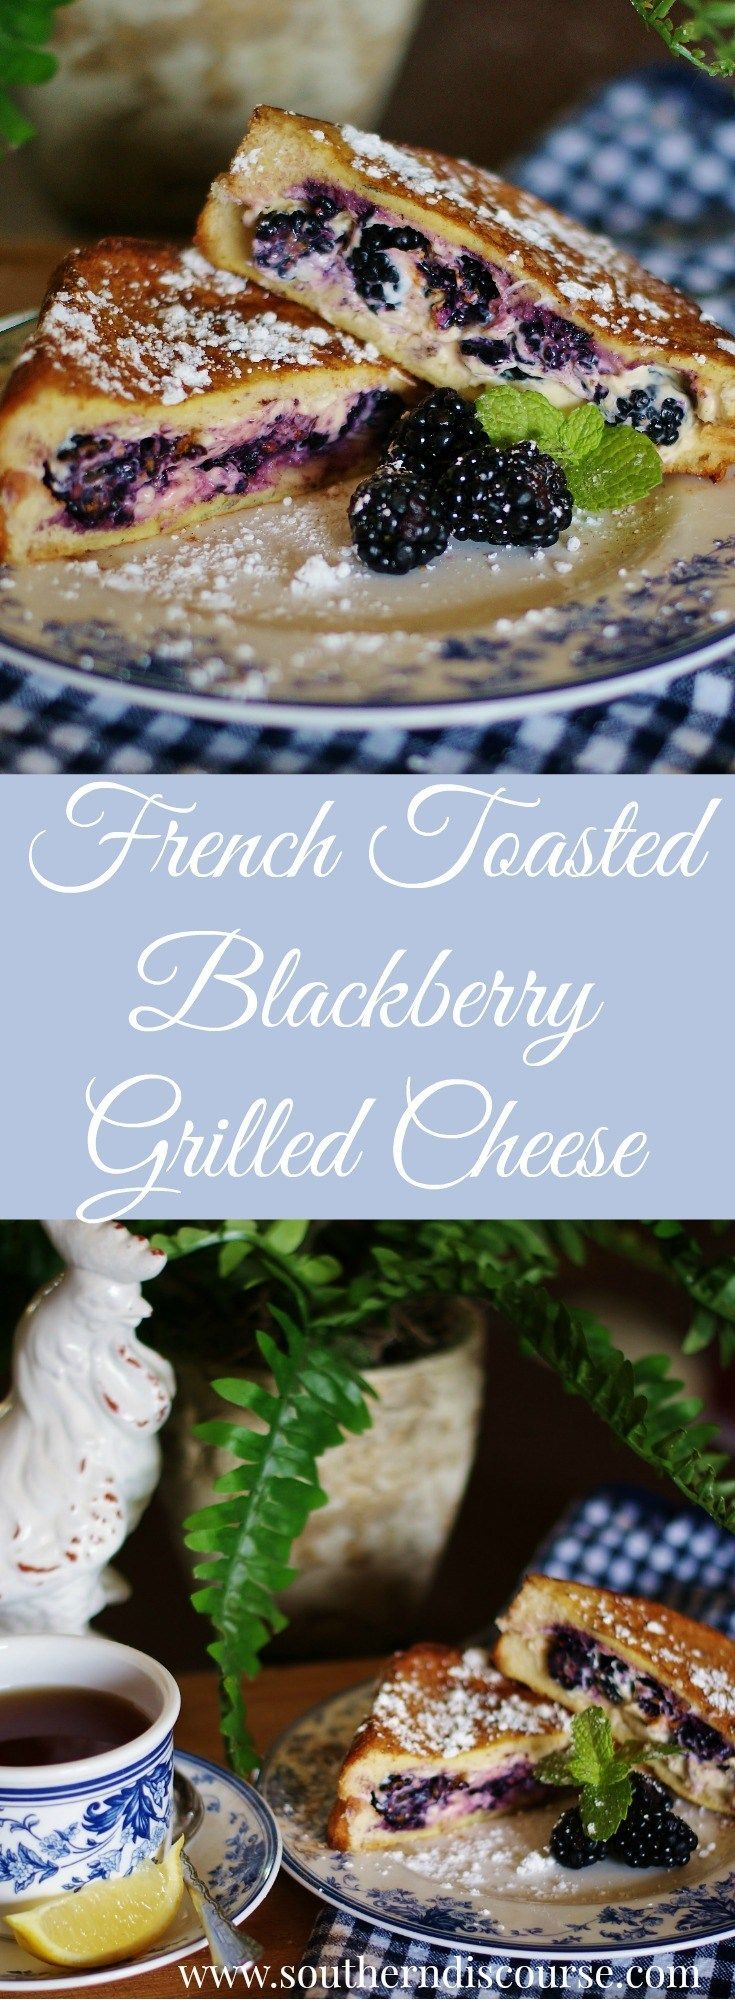 Blackberries and cream cheese or Fontina french toasted to create the perfect breakfast or brunch grilled cheese.